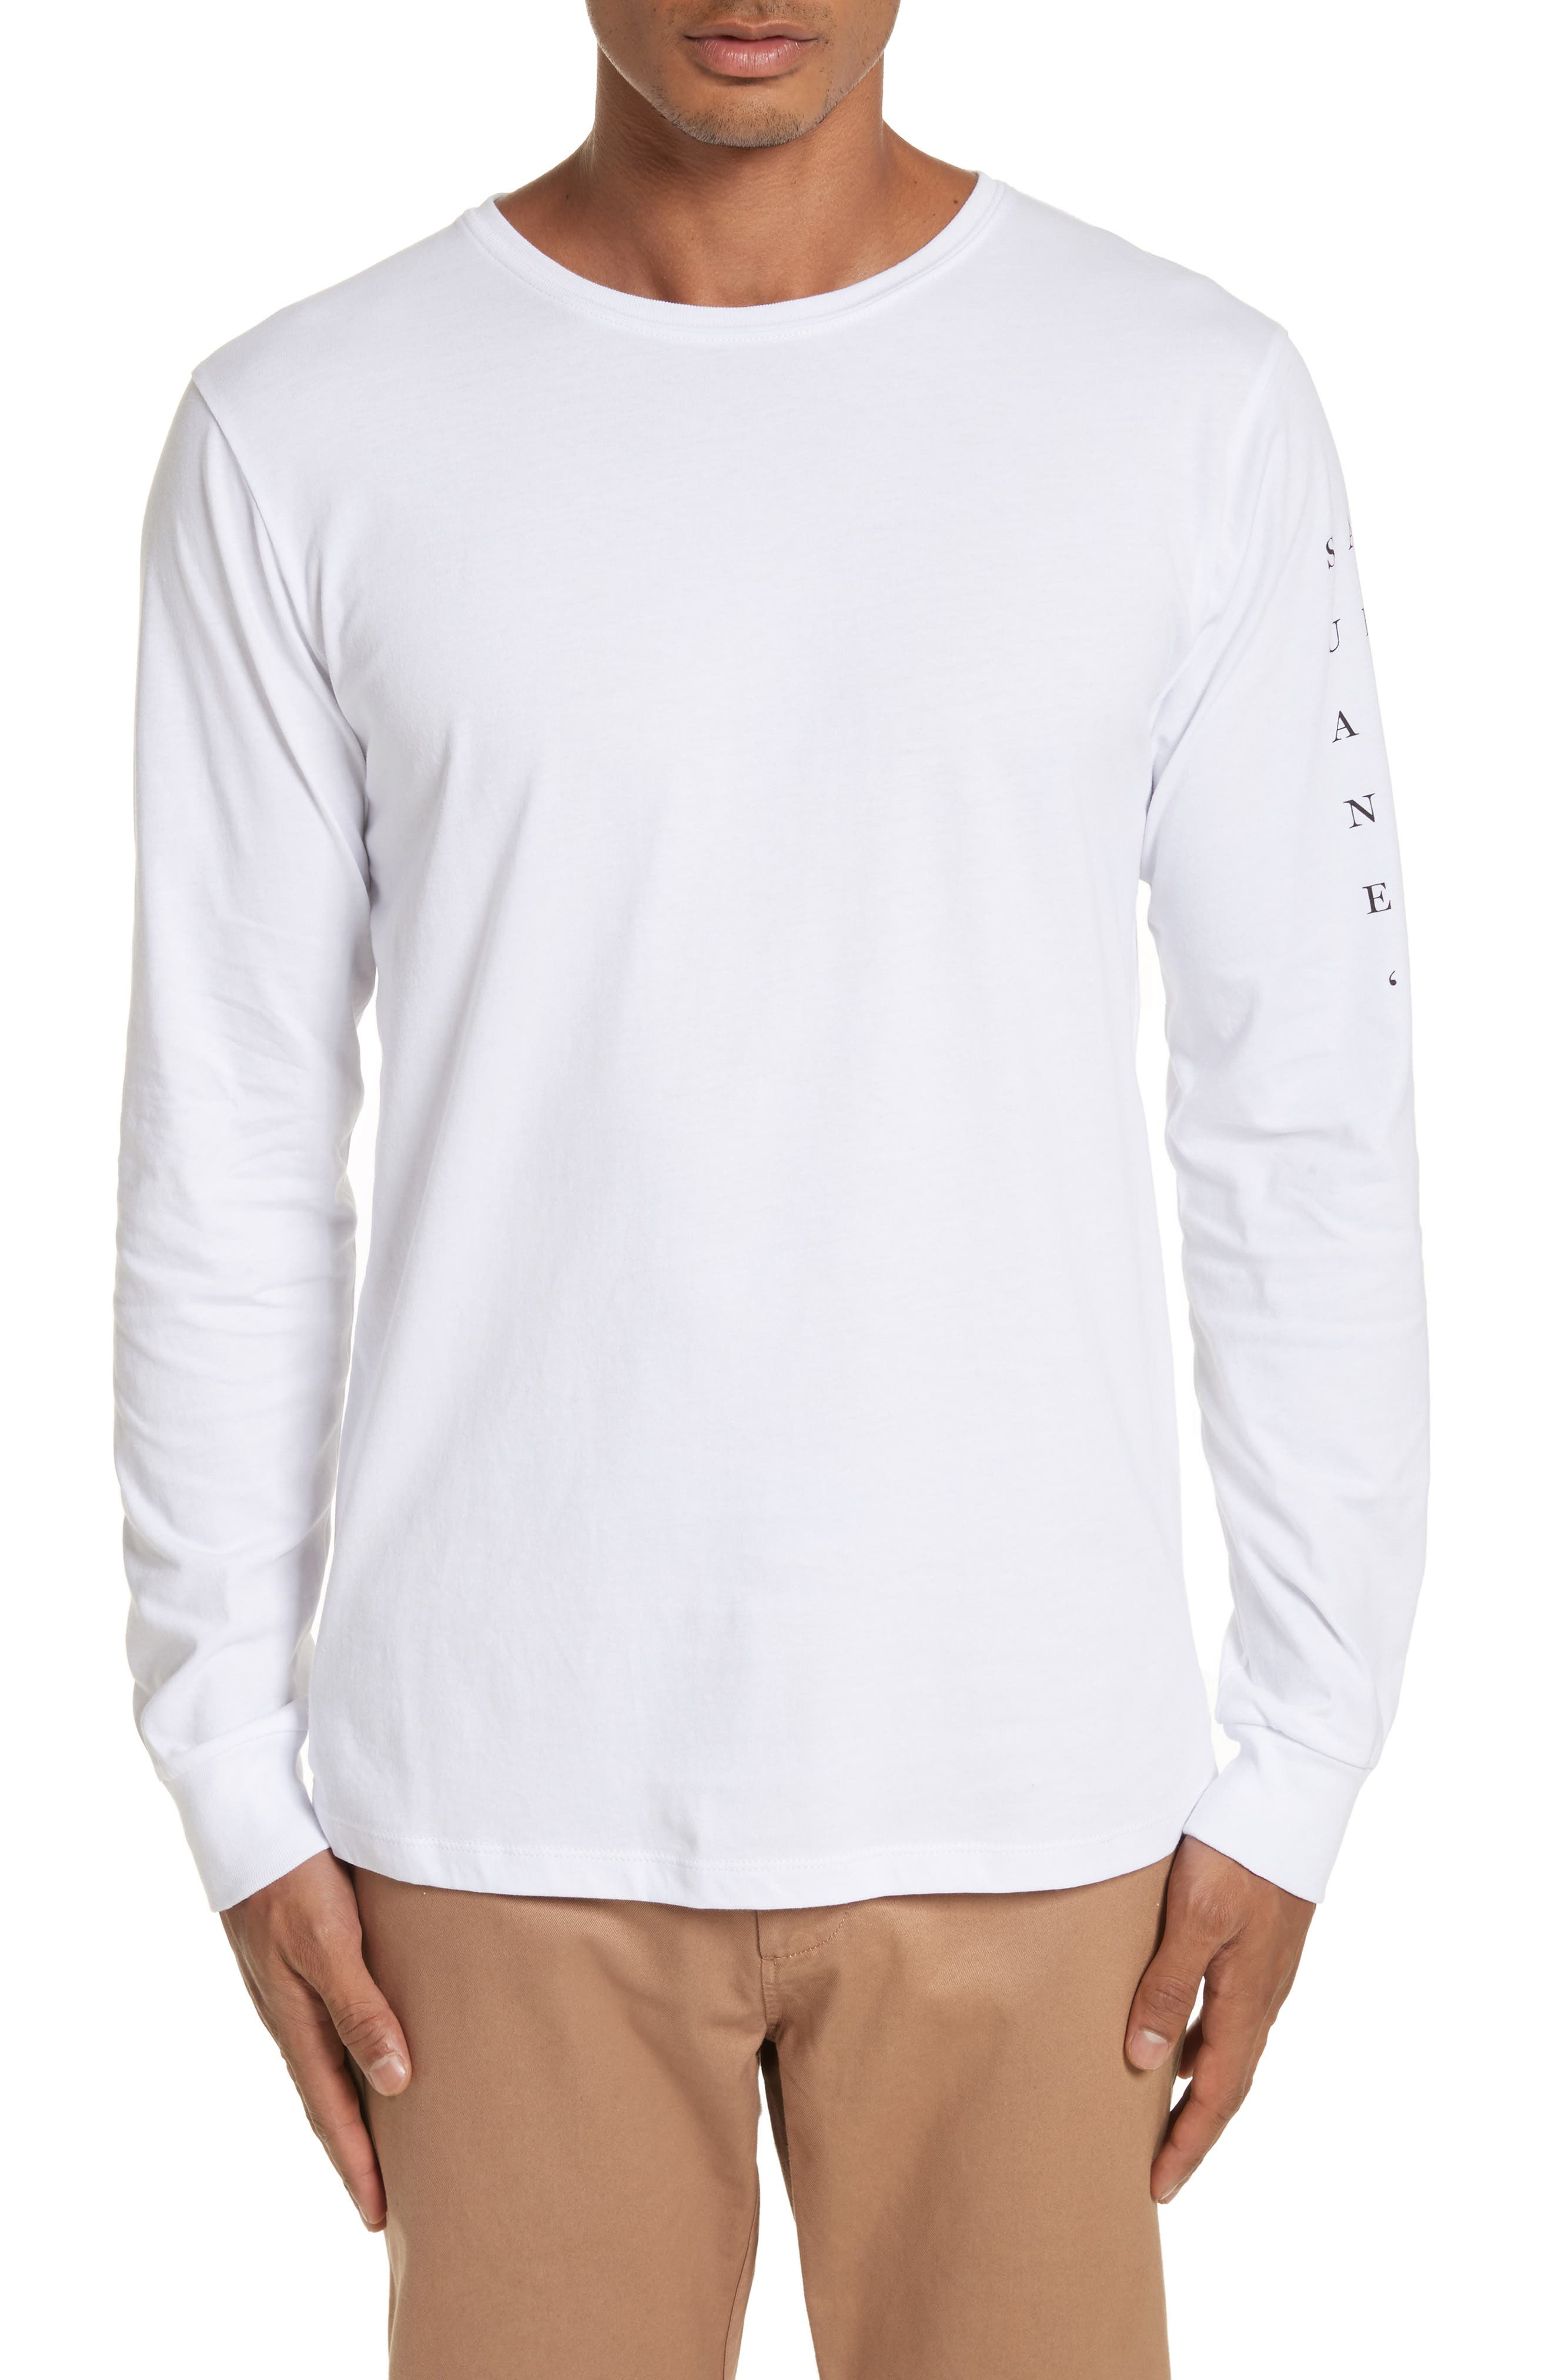 Alternate Image 1 Selected - Saturdays NYC Stacked Logo Graphic Long Sleeve T-Shirt